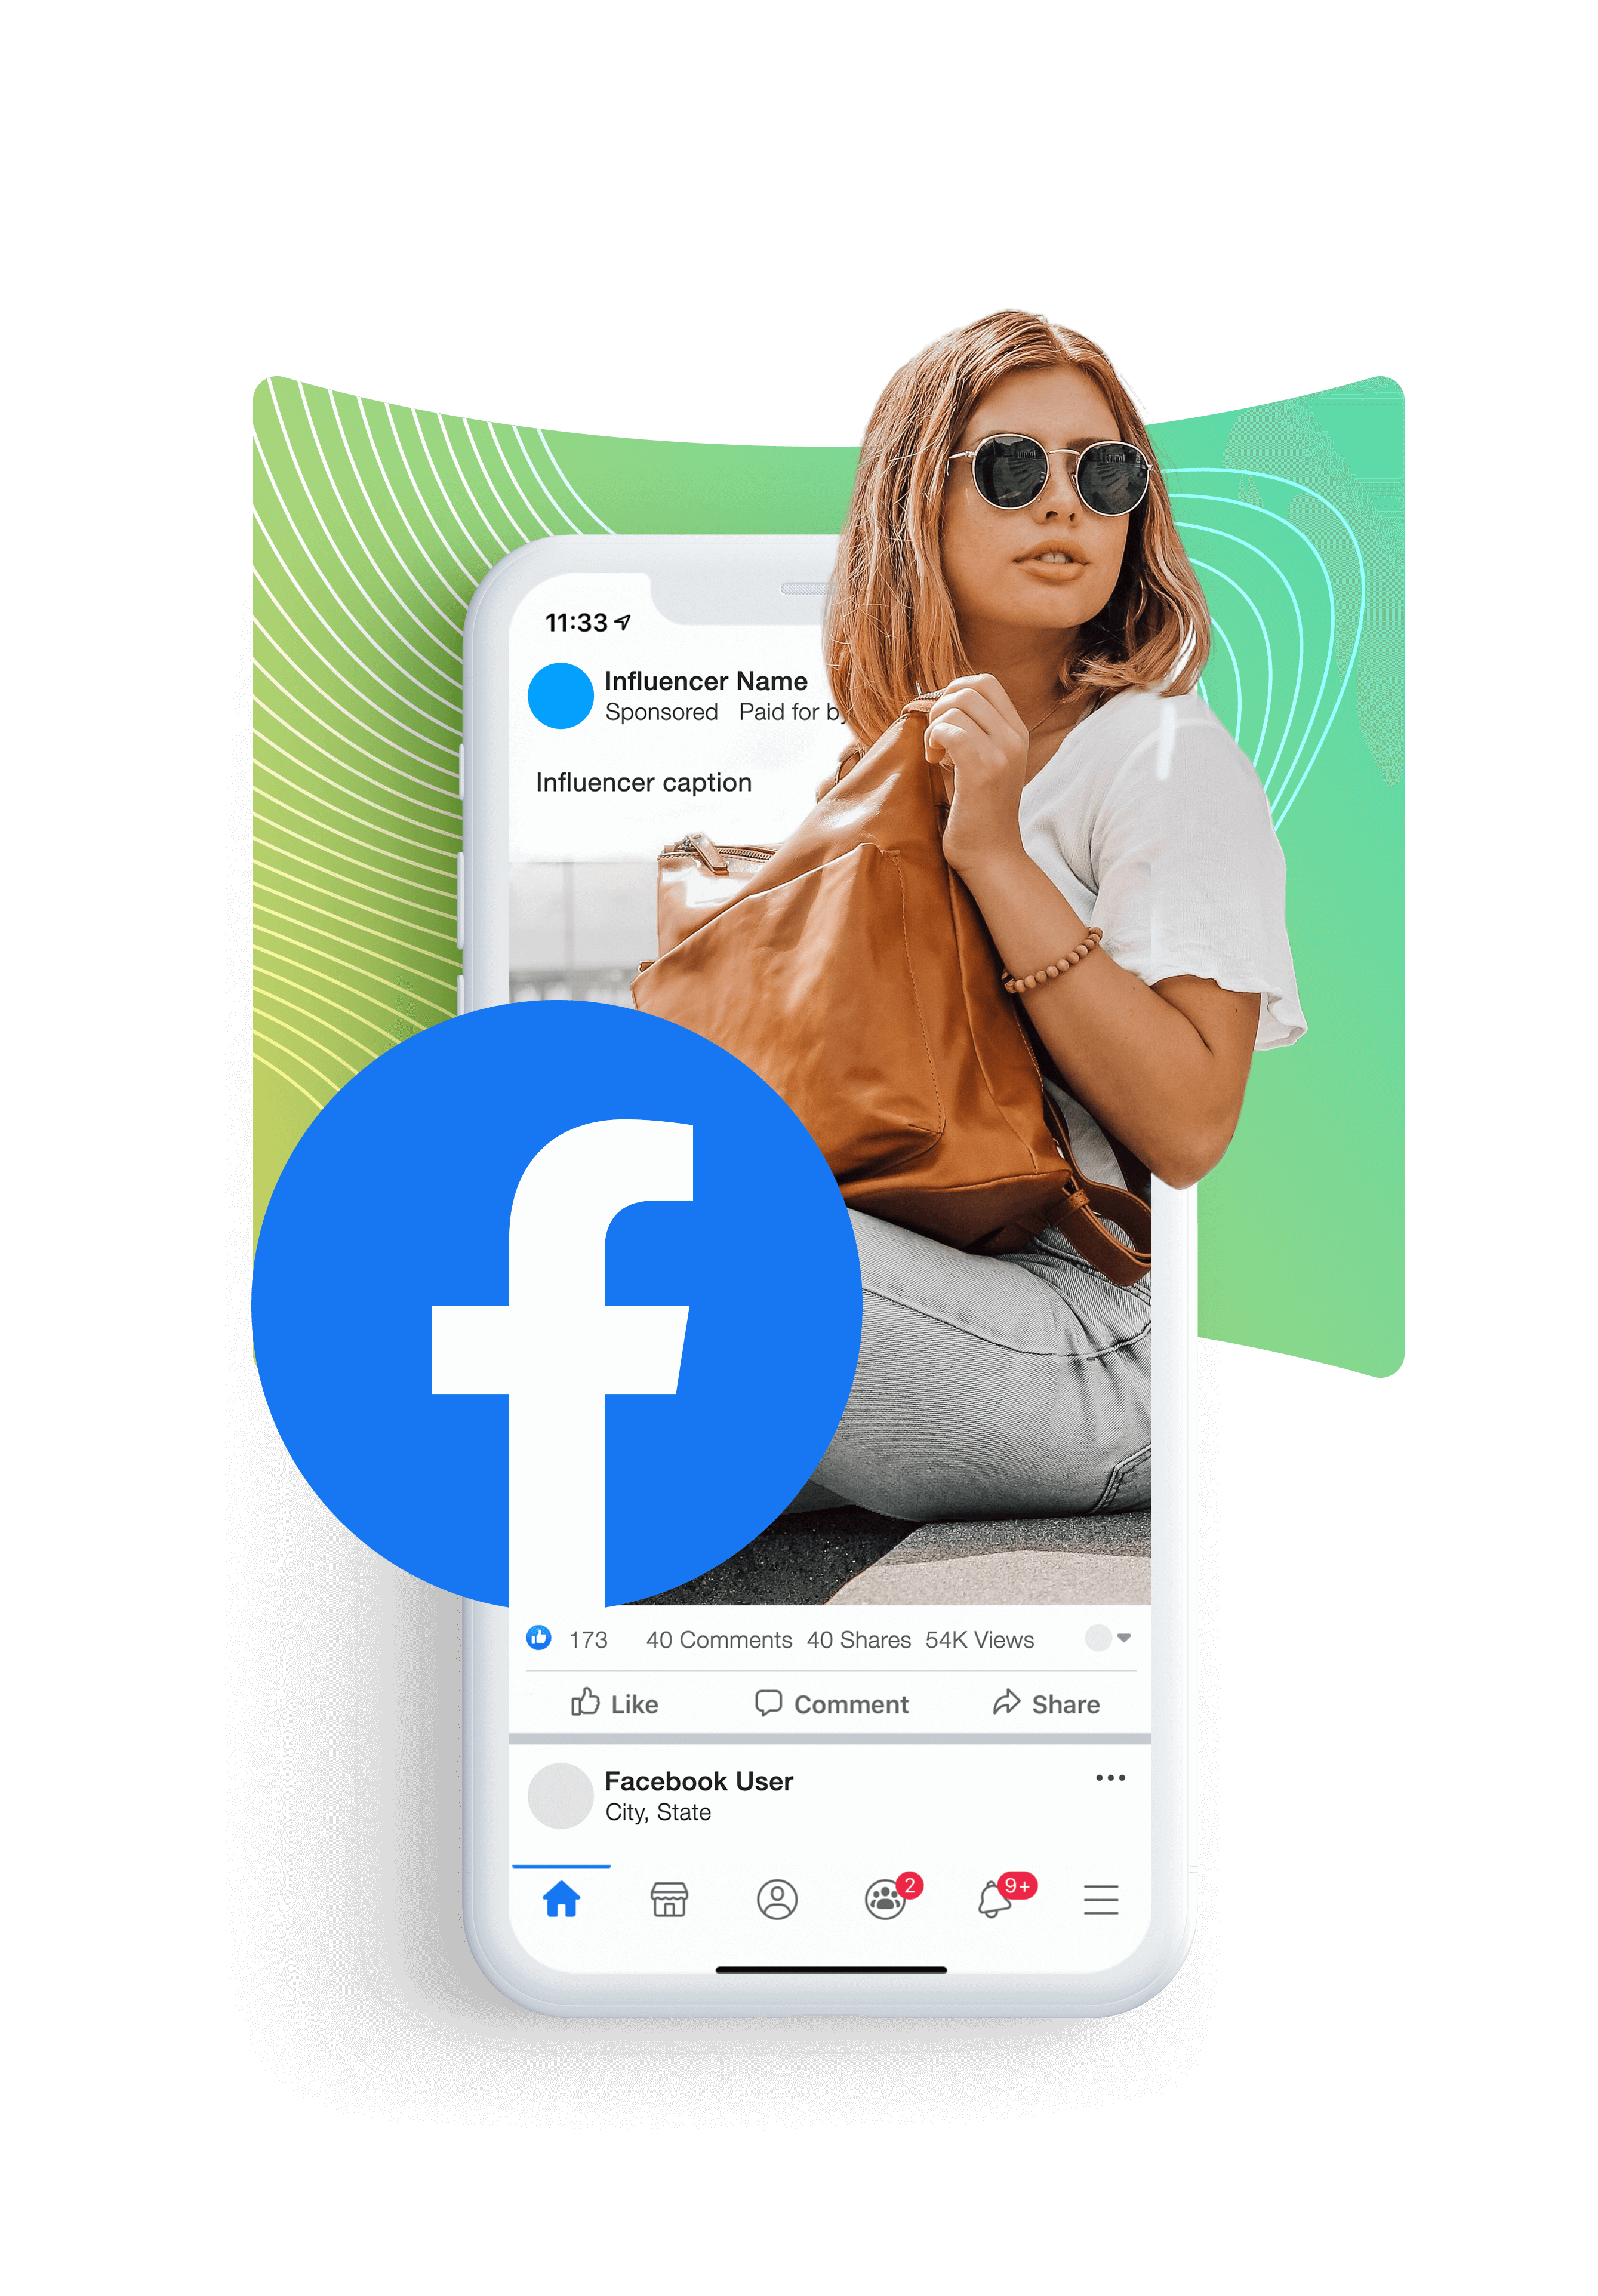 Facebook for Influencers: How to become a social media influencer on Facebook.